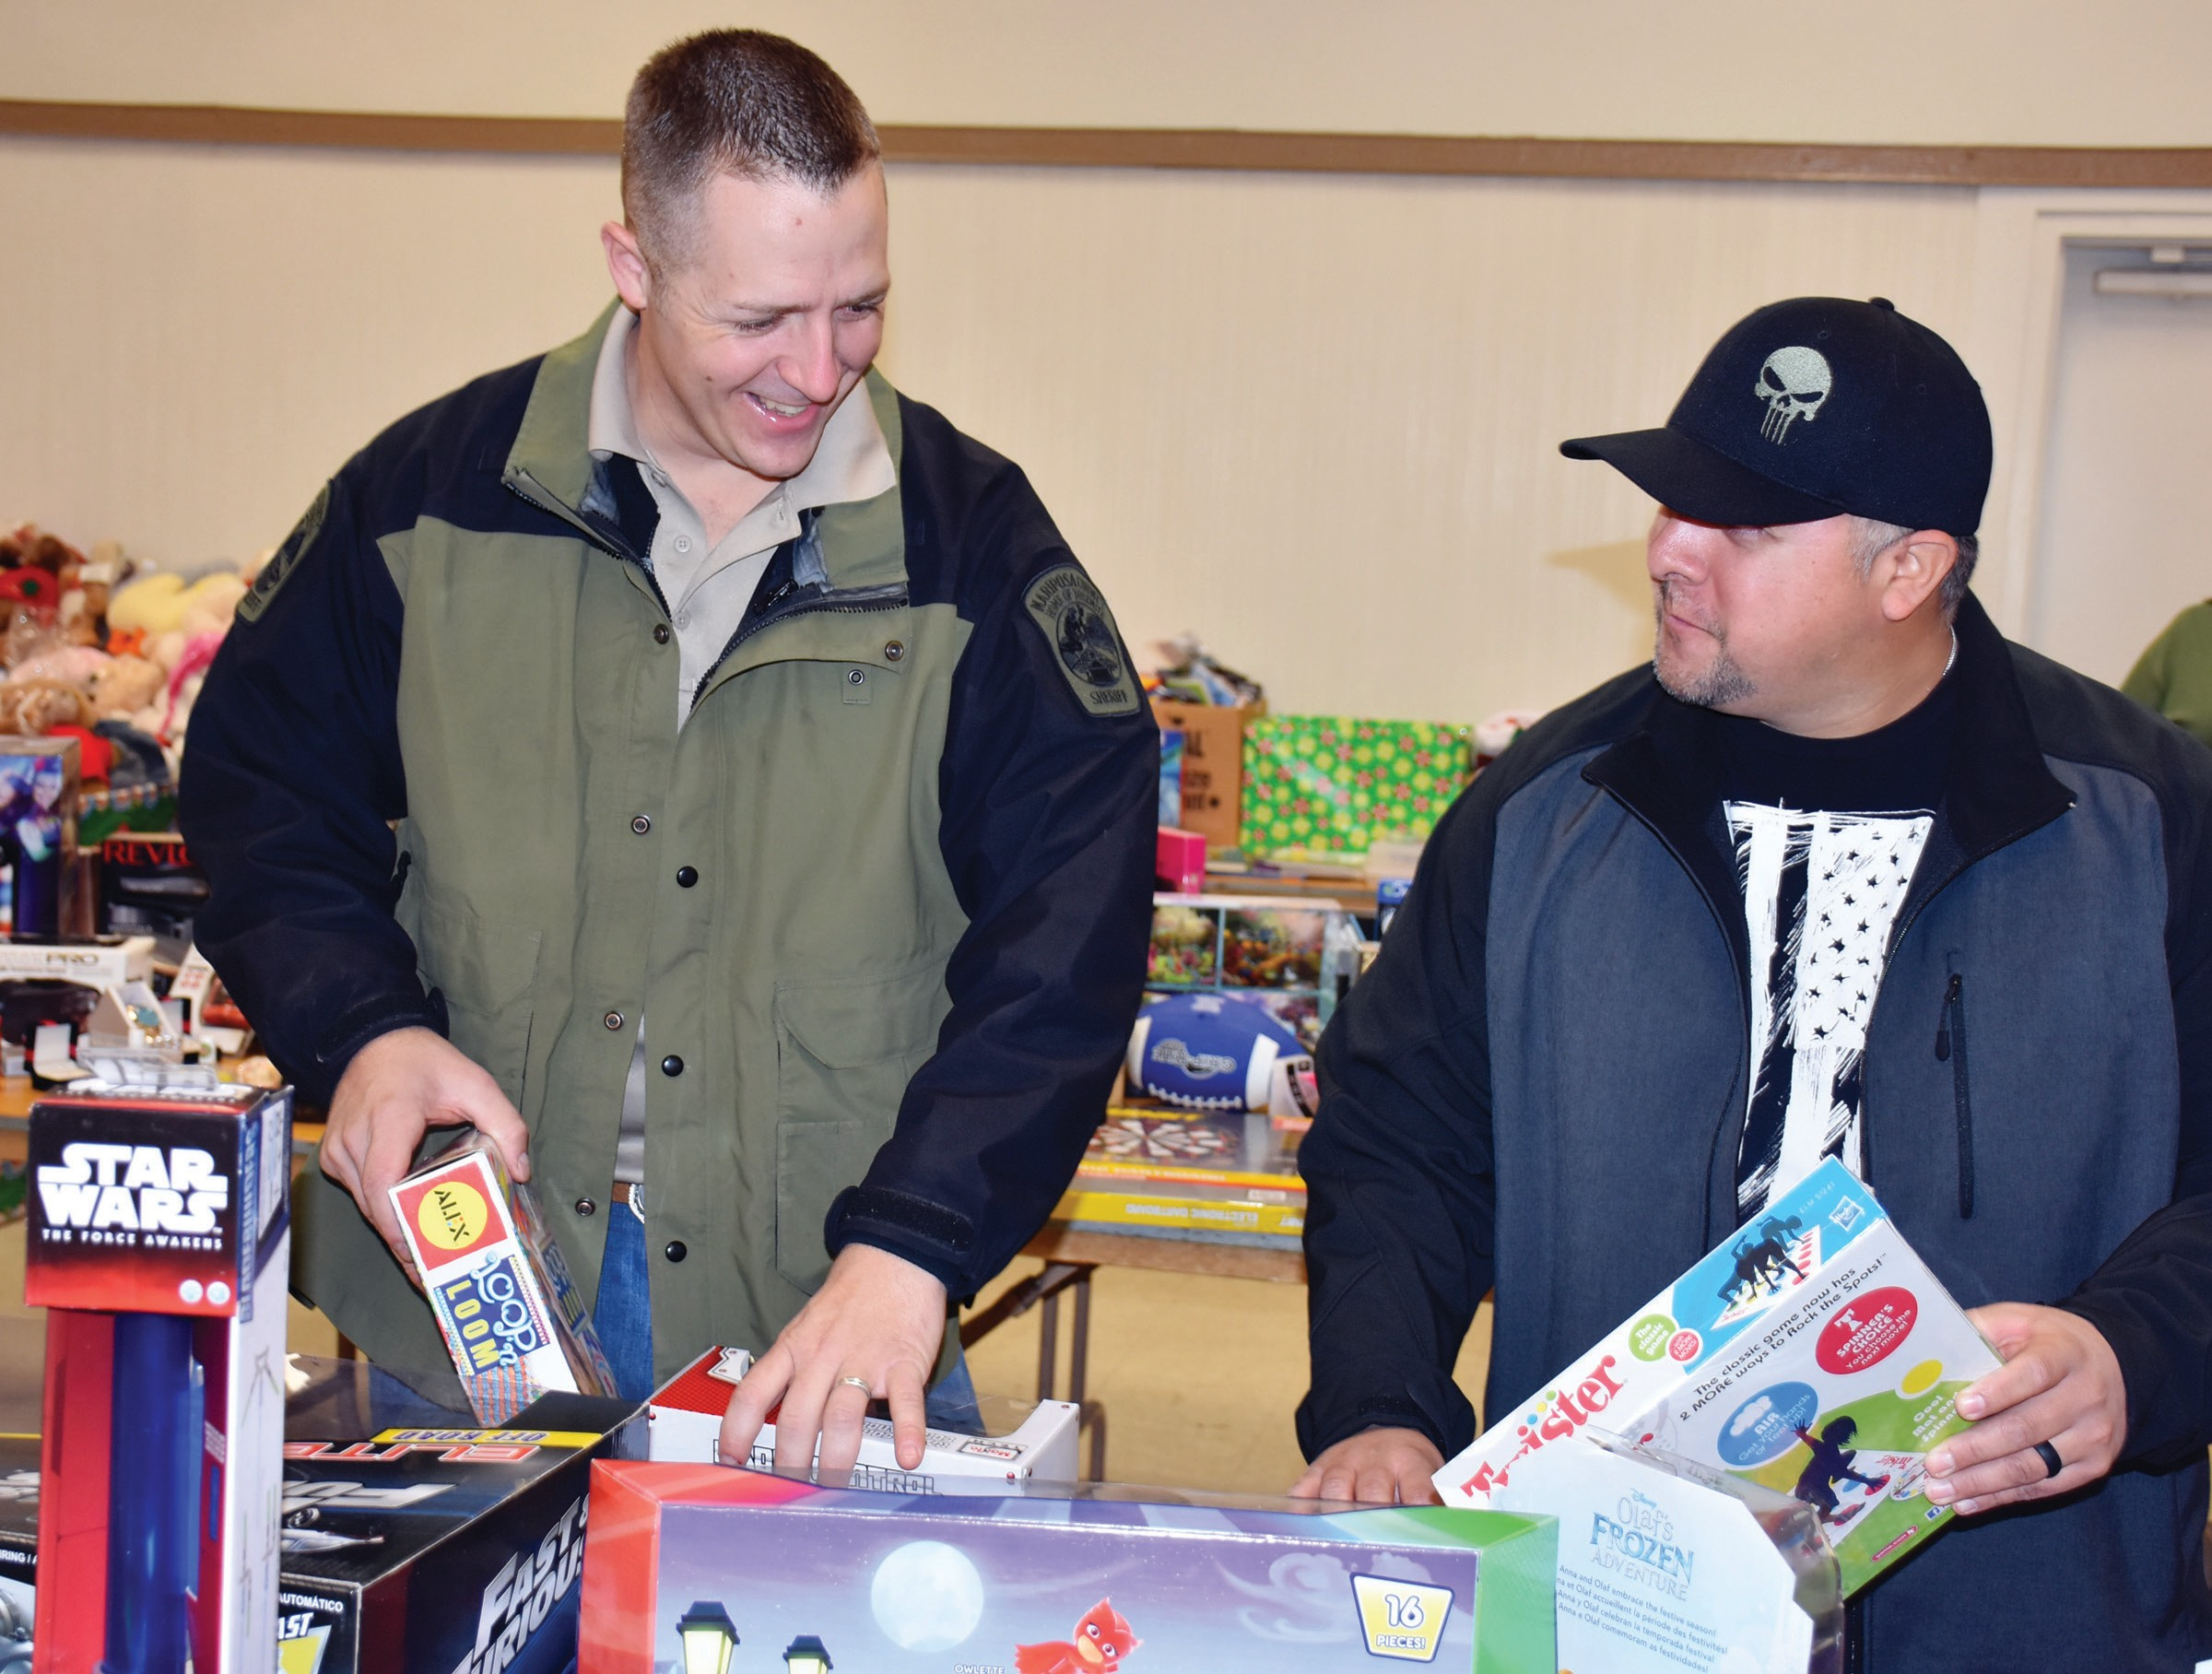 Deputy Will Atkinson, left, and Deputy Chris Boehm of the Mariposa County Sheriff's Office put the final touches on straightening toys during the Kops for Kids event last Saturday at the fairgrounds. Photo by Nicole W. Little